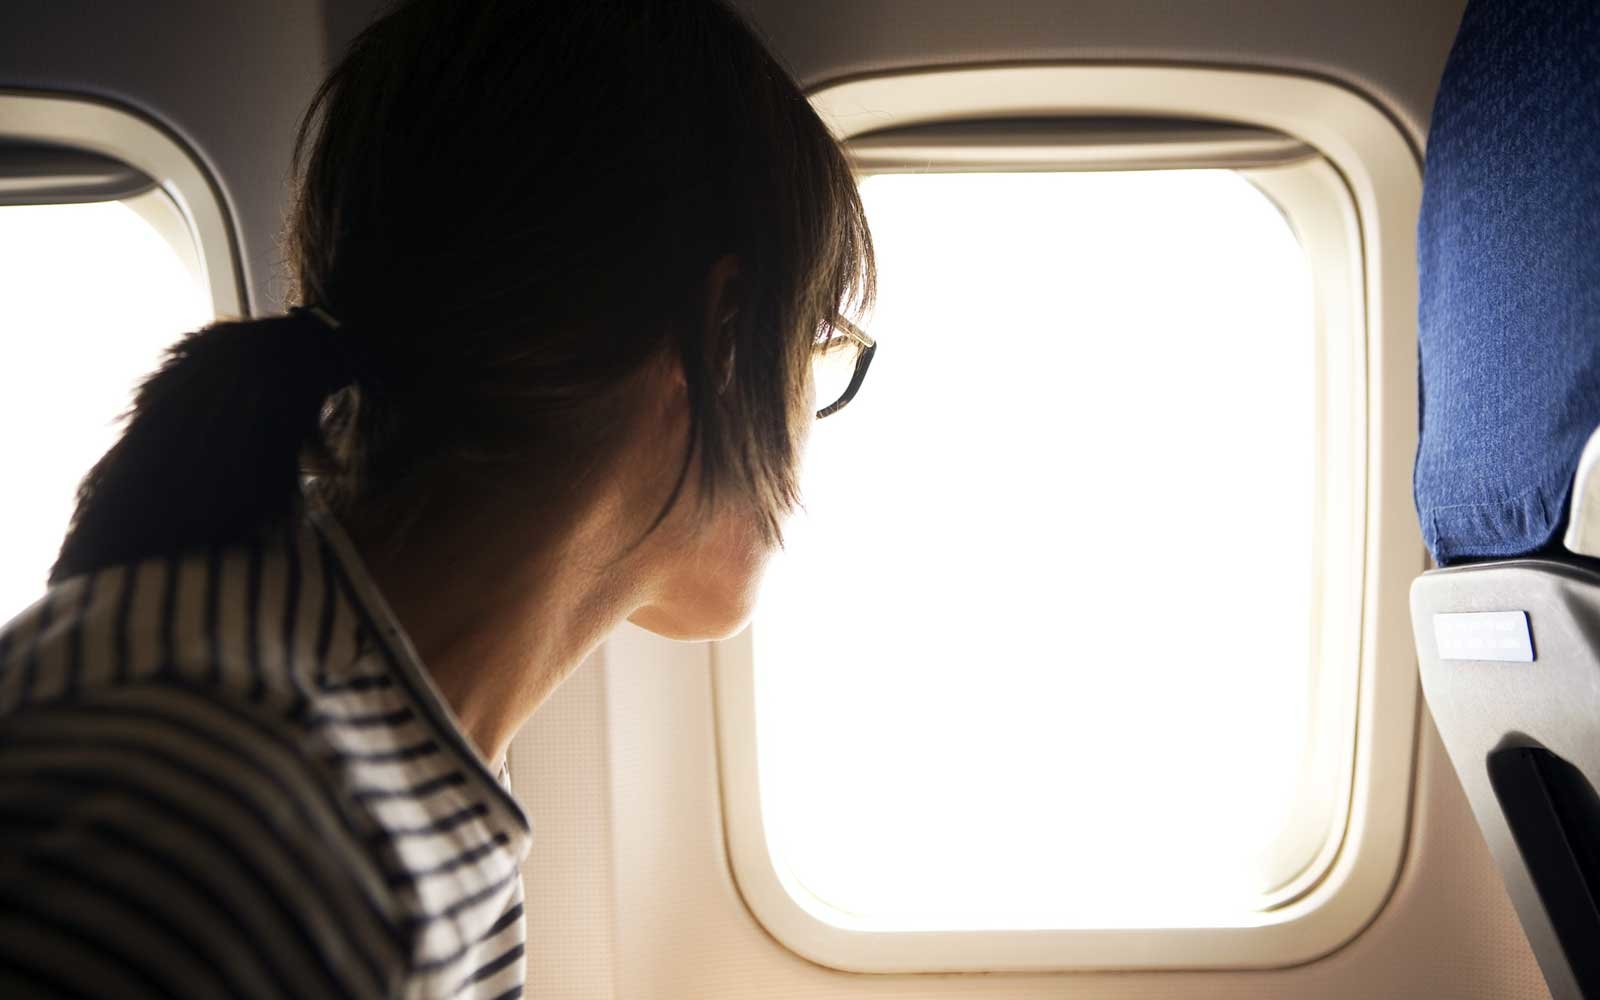 Airplane passenger looks out window